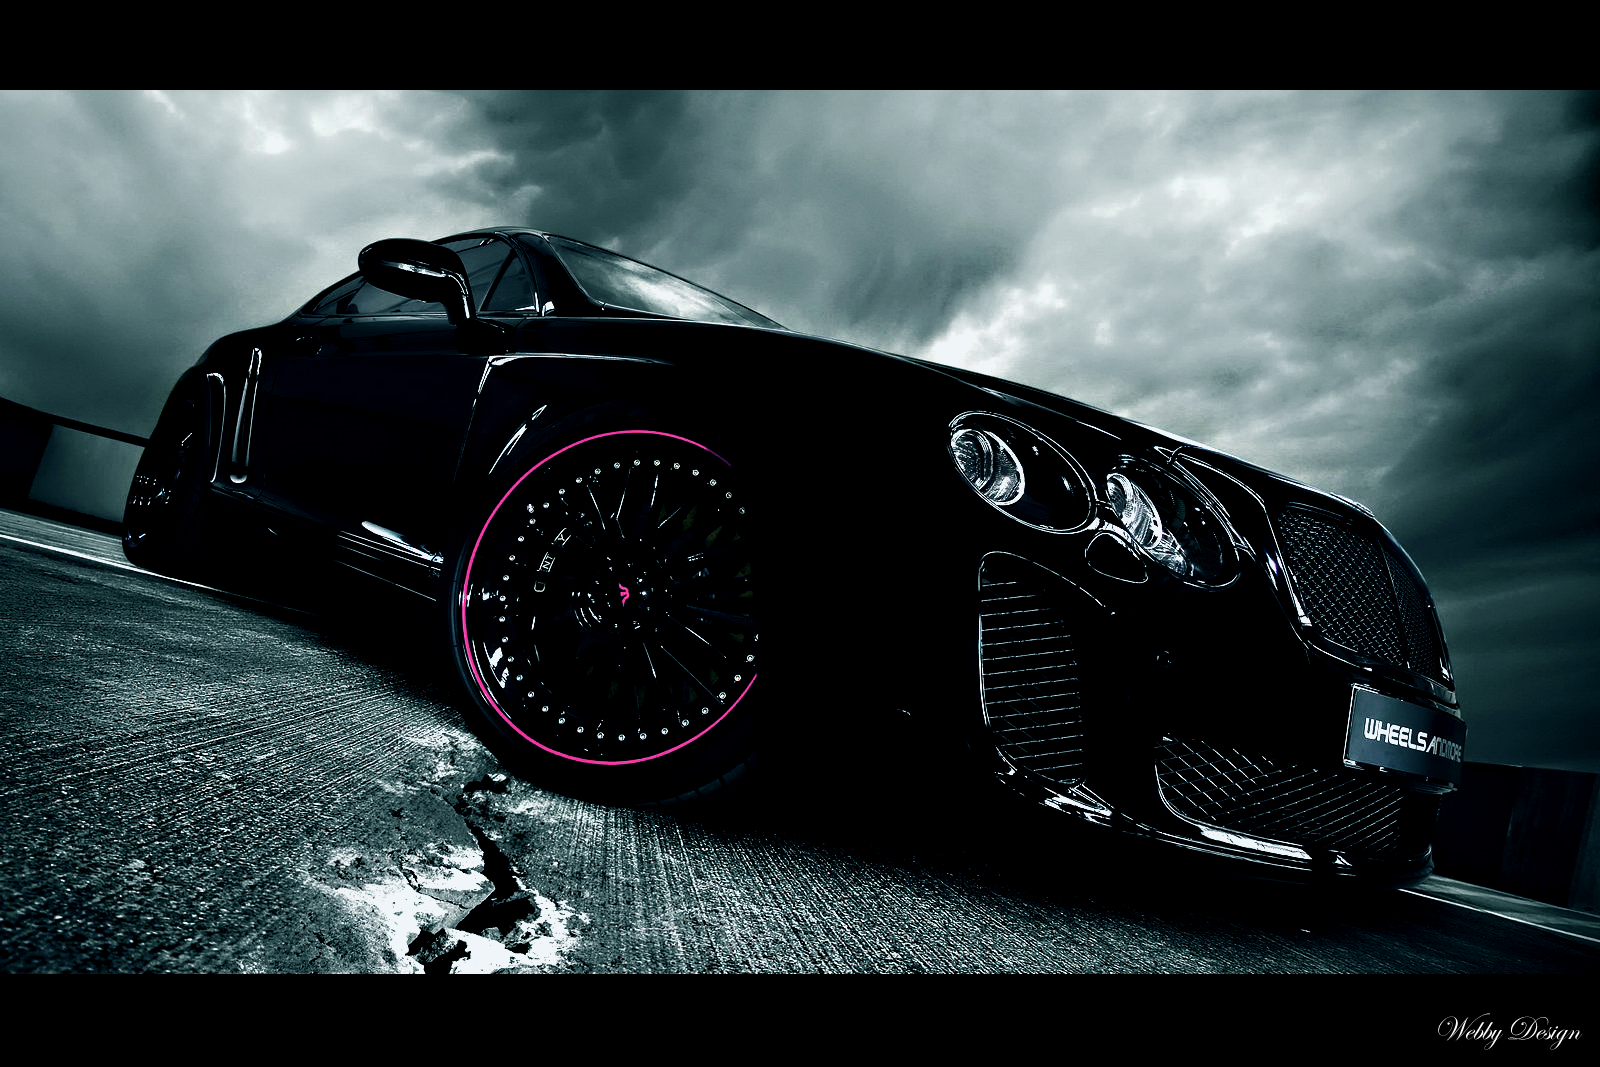 Toyota Of Plano >> Supercar Wallpapers [Wallpaper Wednesday] - Hongkiat